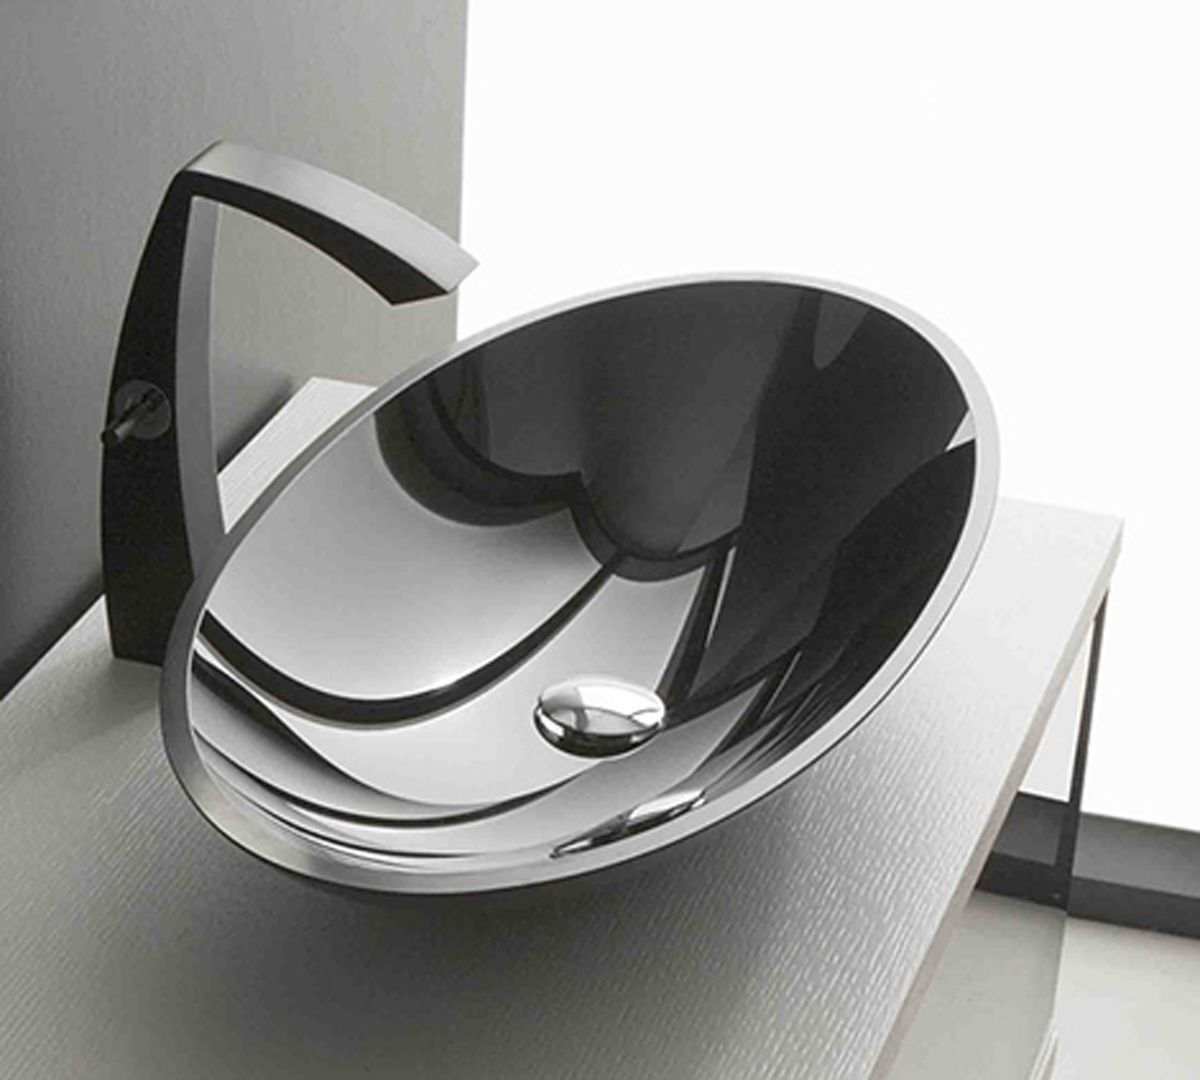 Fascinating Sink With Modern Bathroom Faucets And Oval Bowl Using Reflective Surface